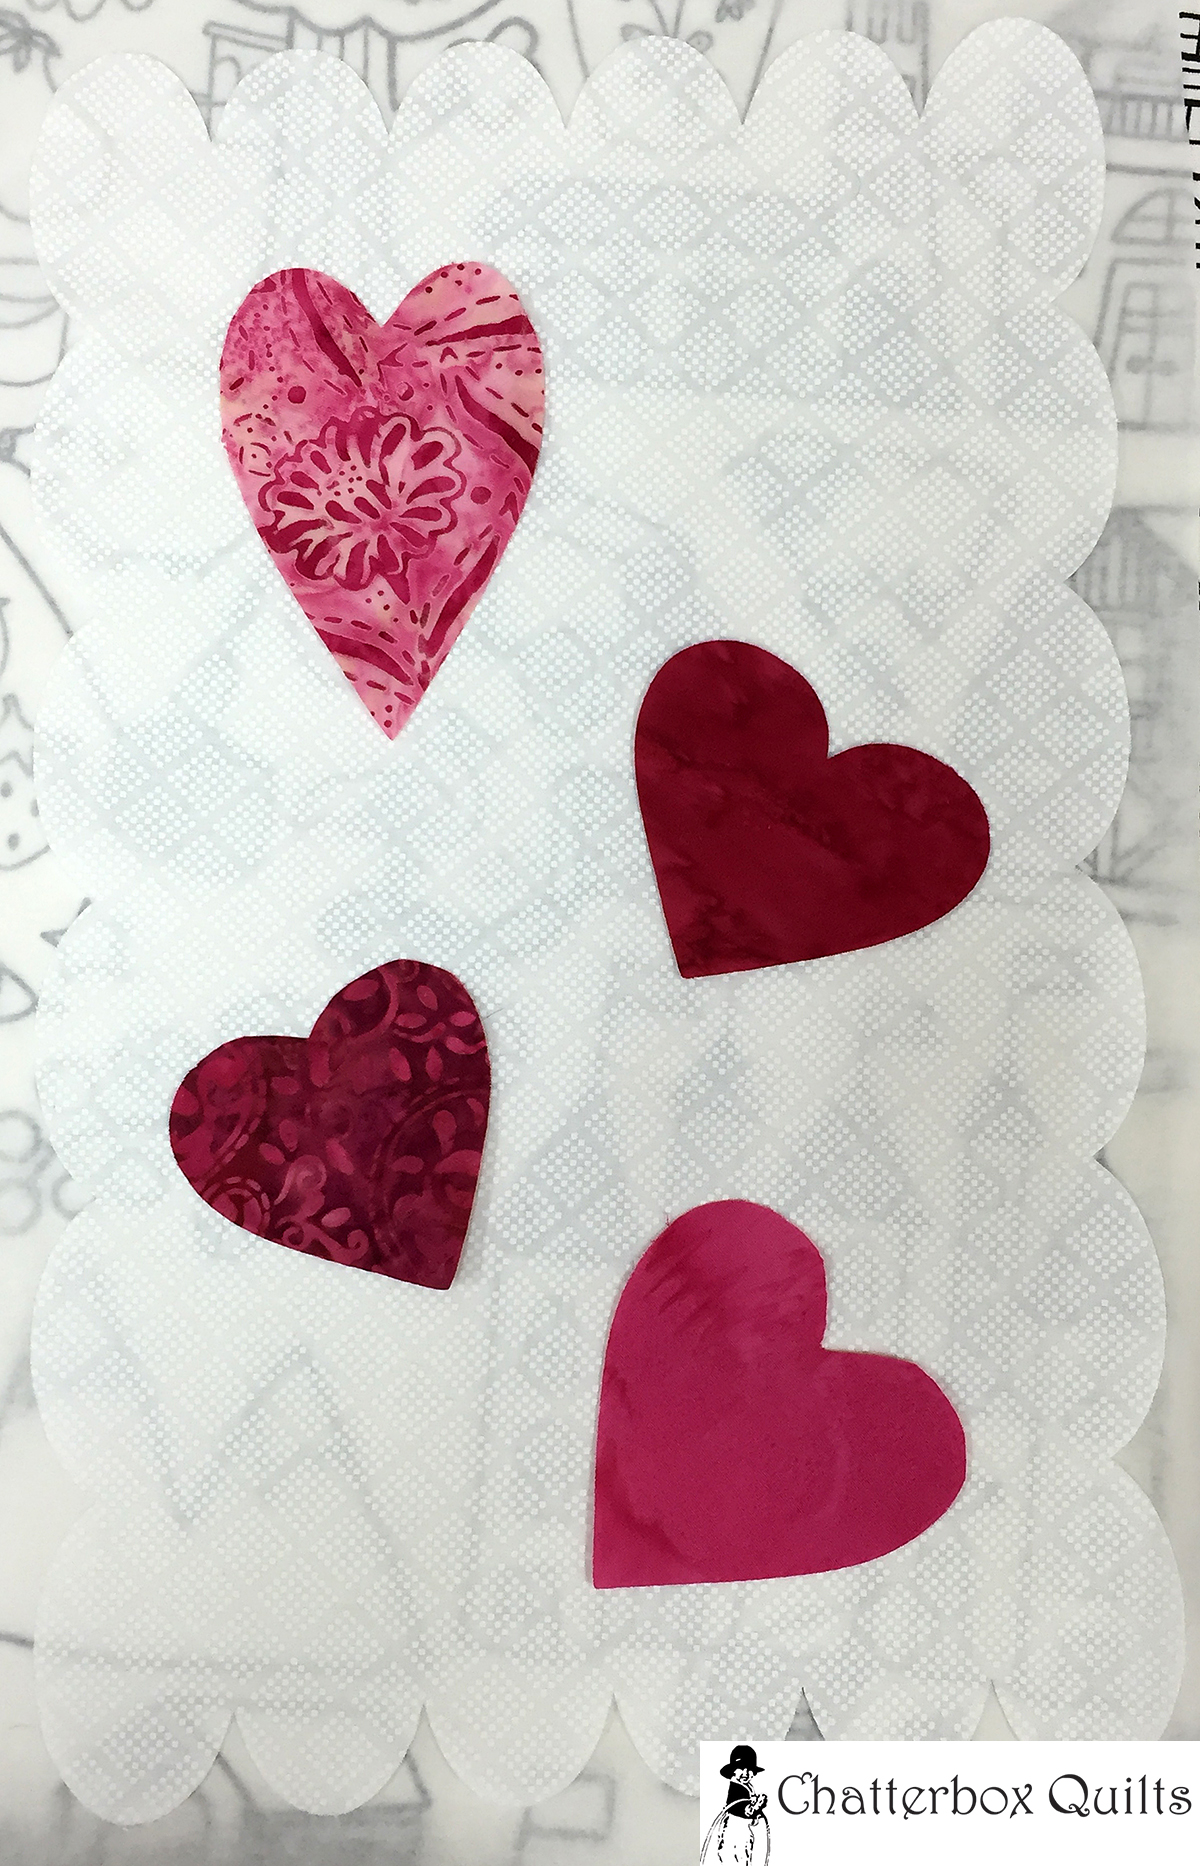 Hearts fused to the scalloped appliqué background